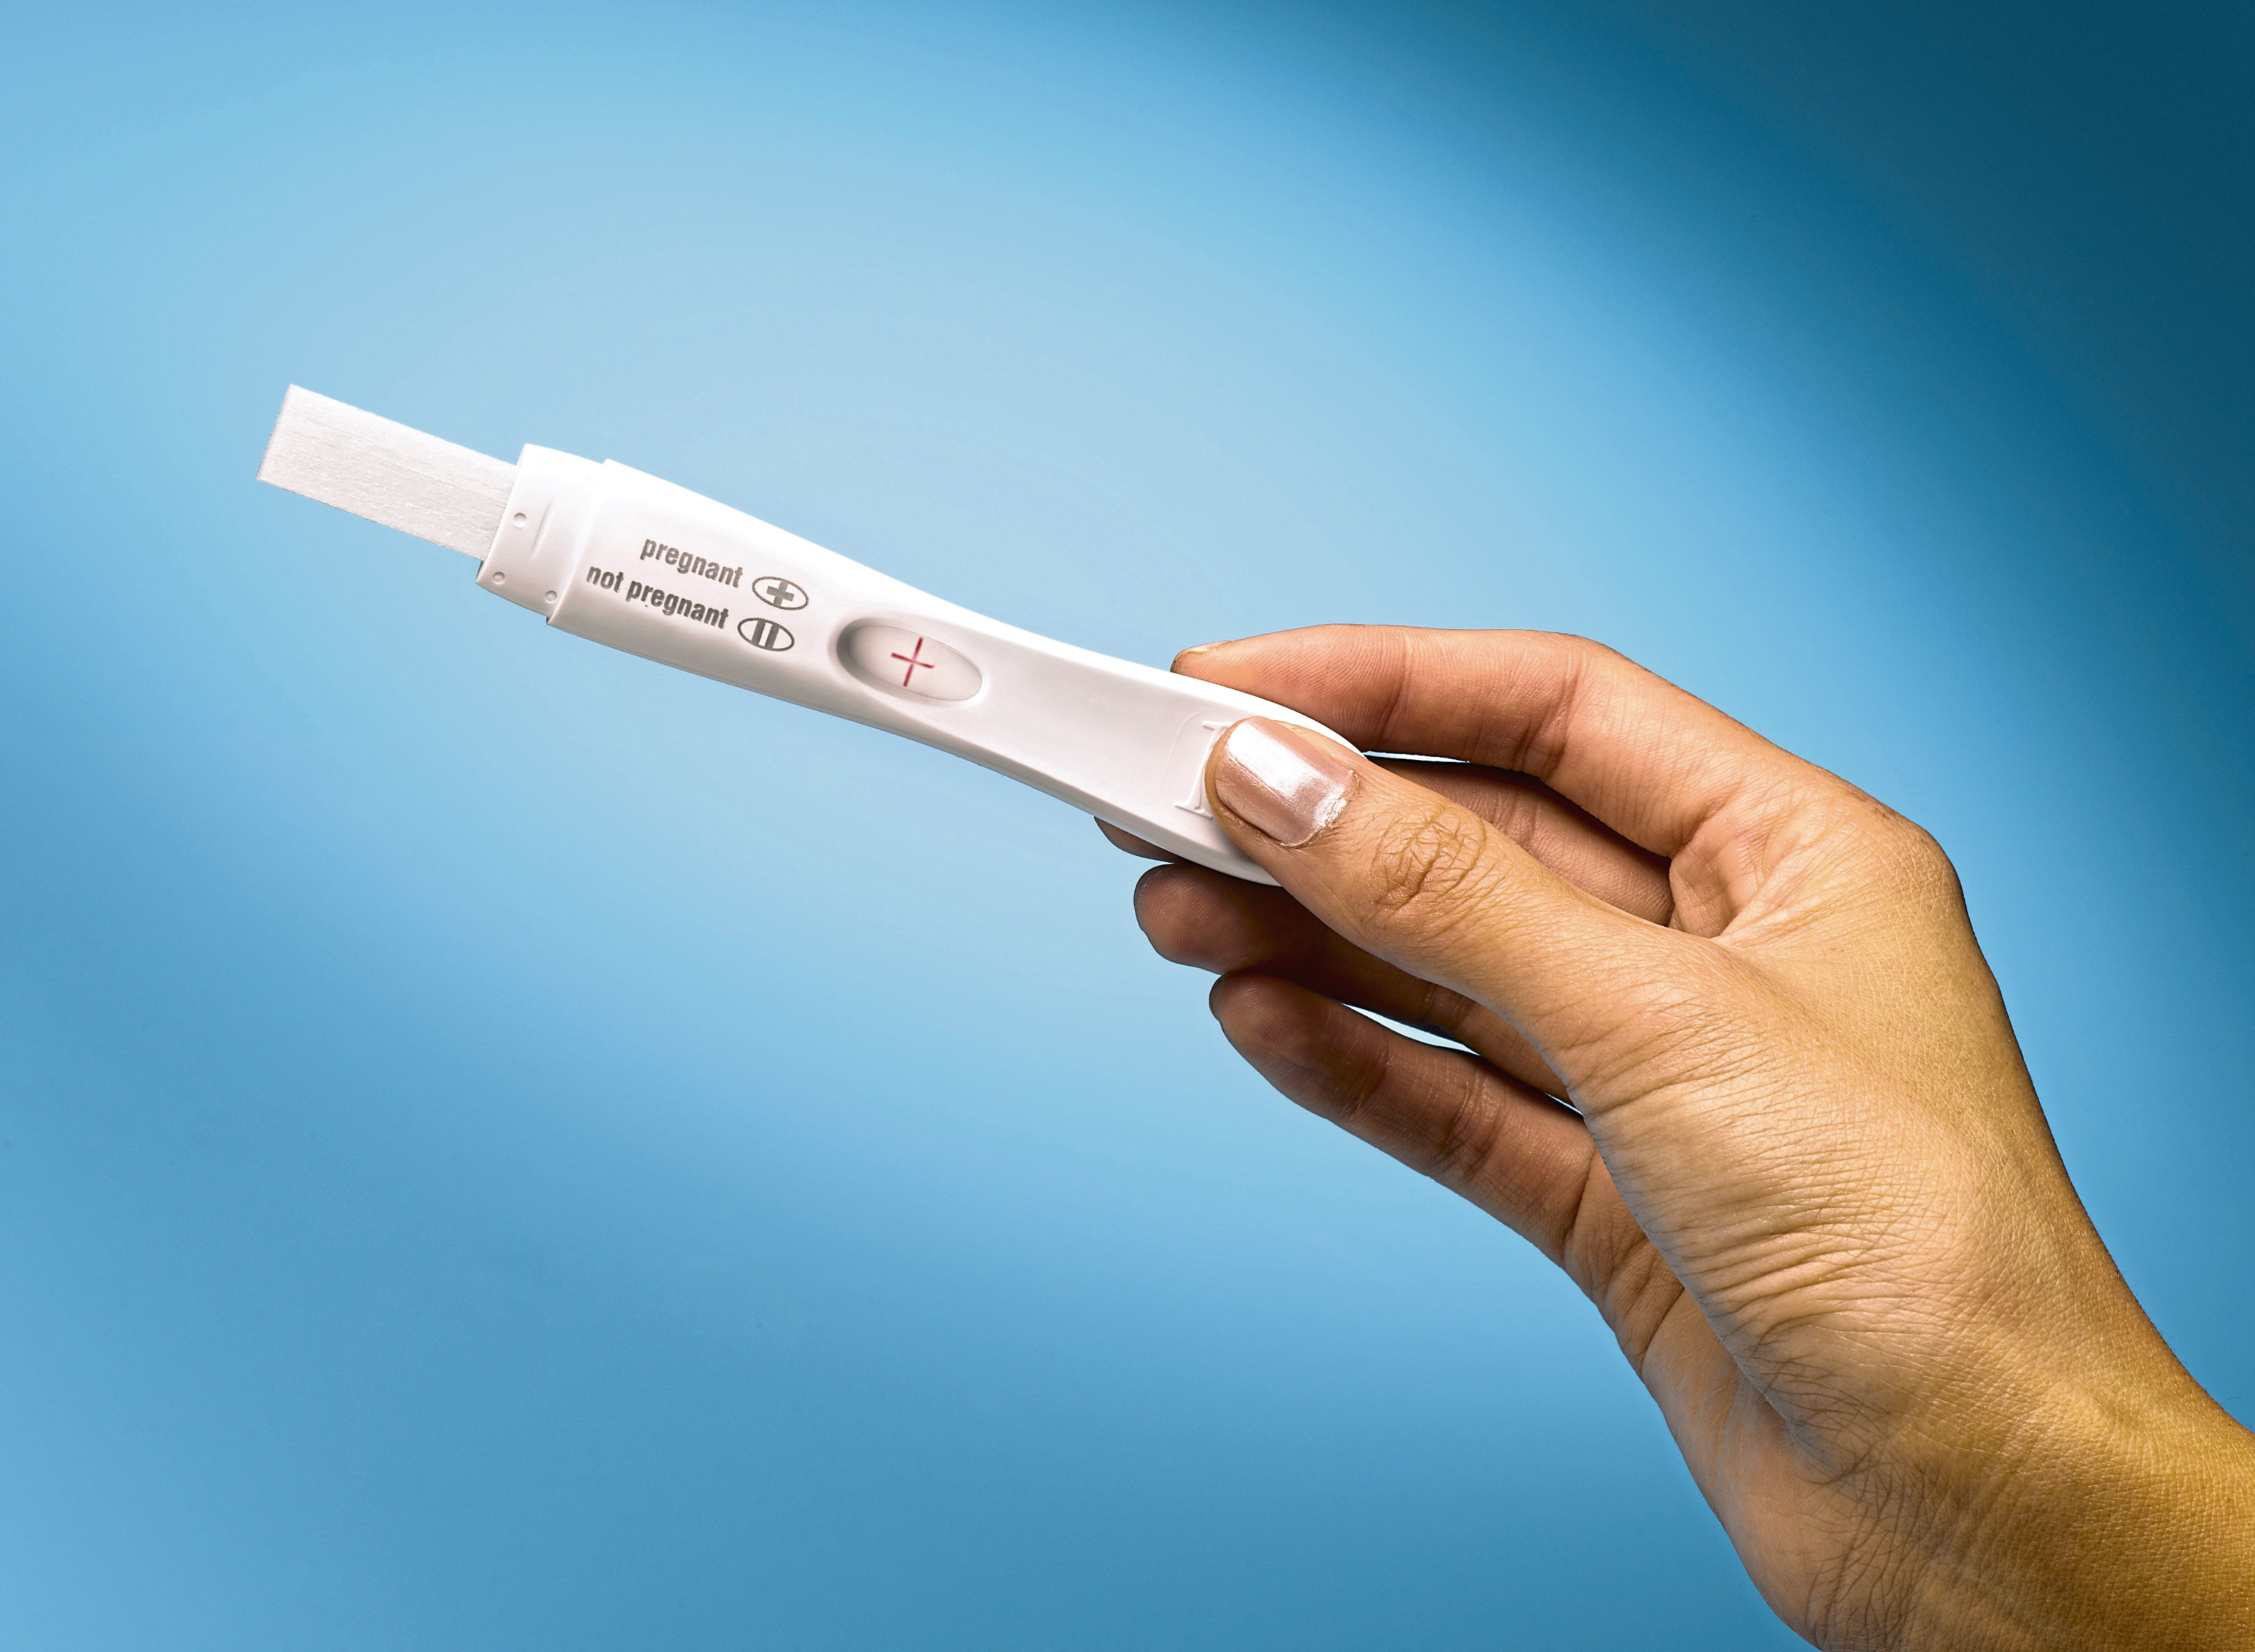 Women on the voluntary scheme must agree to being put on long-term contraception.